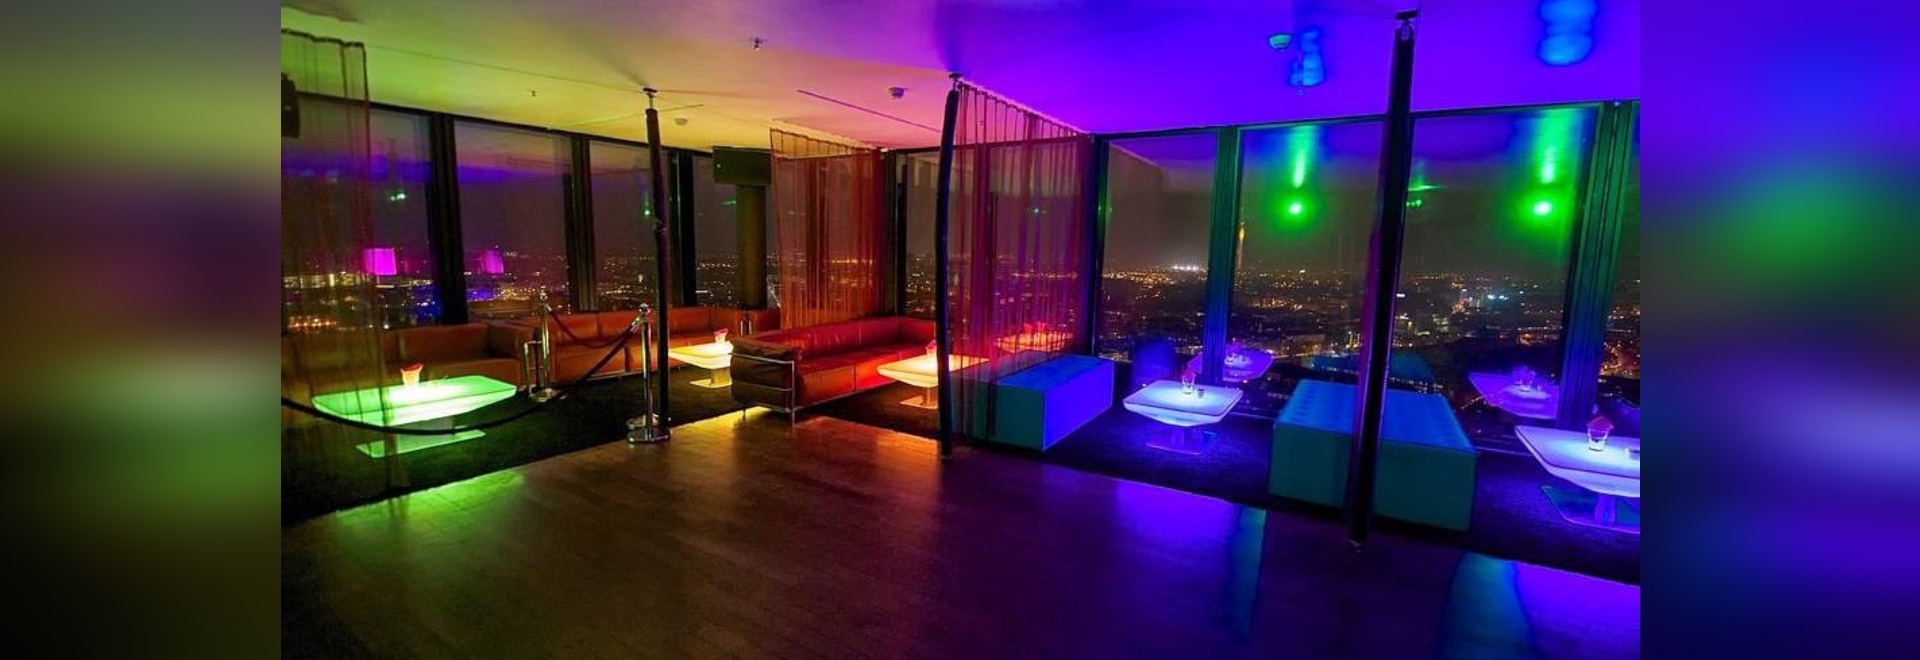 FASCINATING LIGHTING AMBIENCE FOR BASEL'S PARTYGOERS: